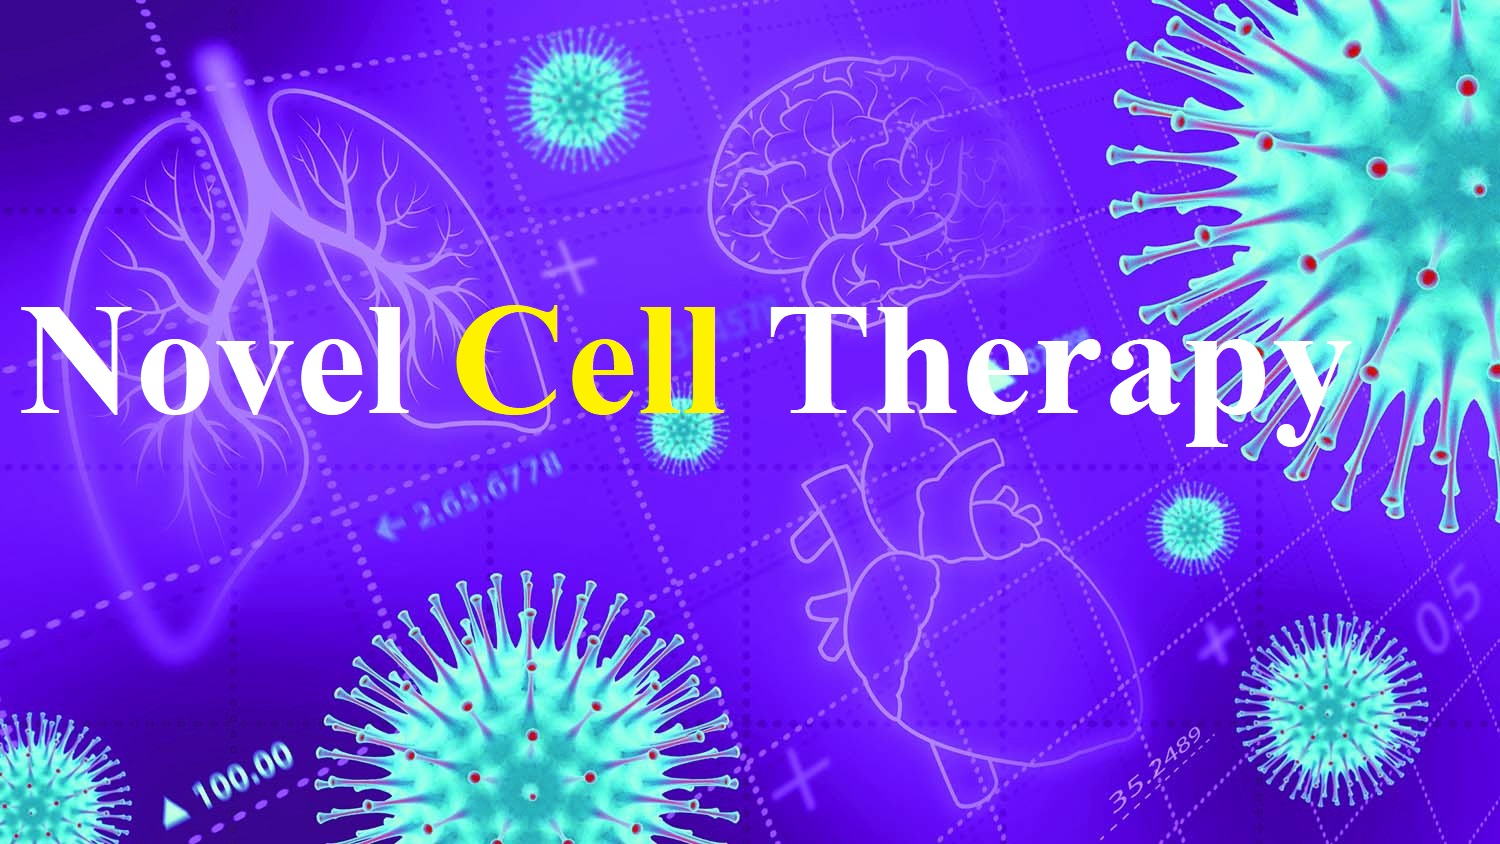 Novel Cell Therapy